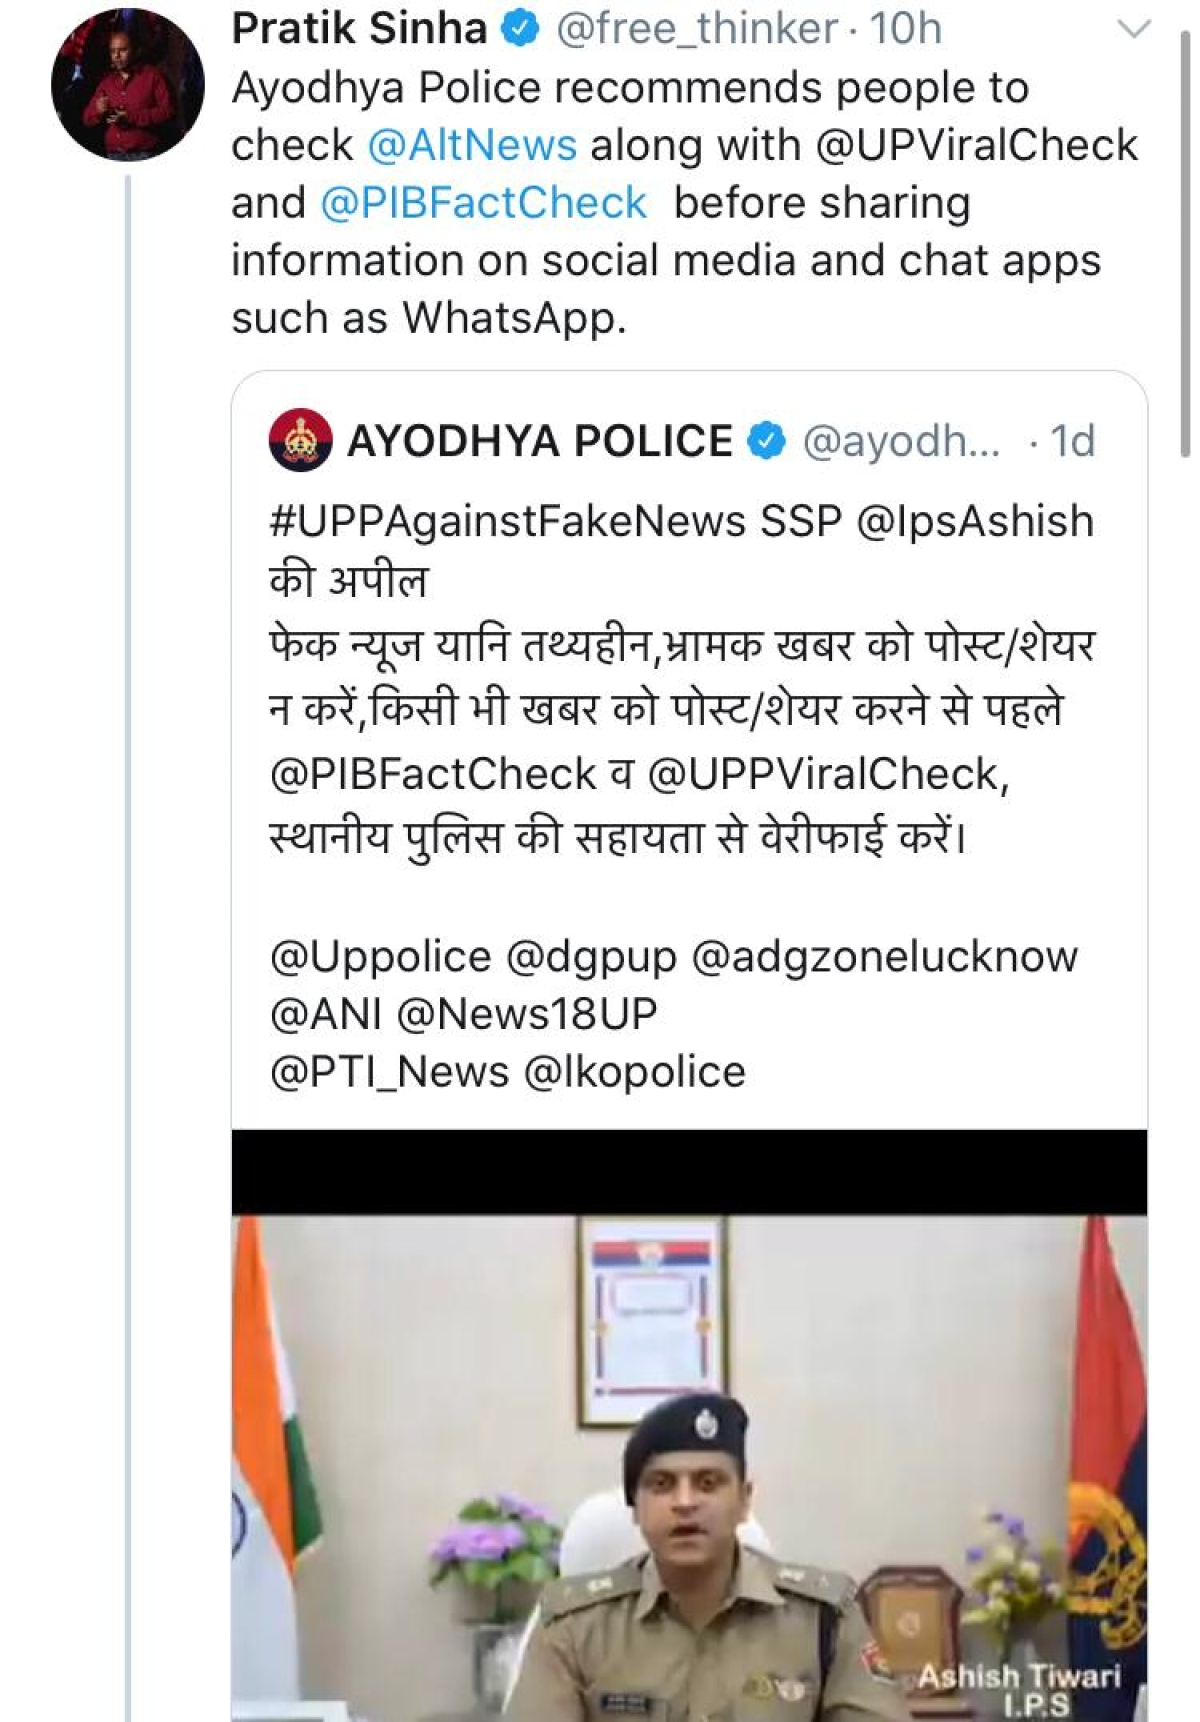 Ayodhya Police asks people to verify posts using AltNews, deletes tweet later